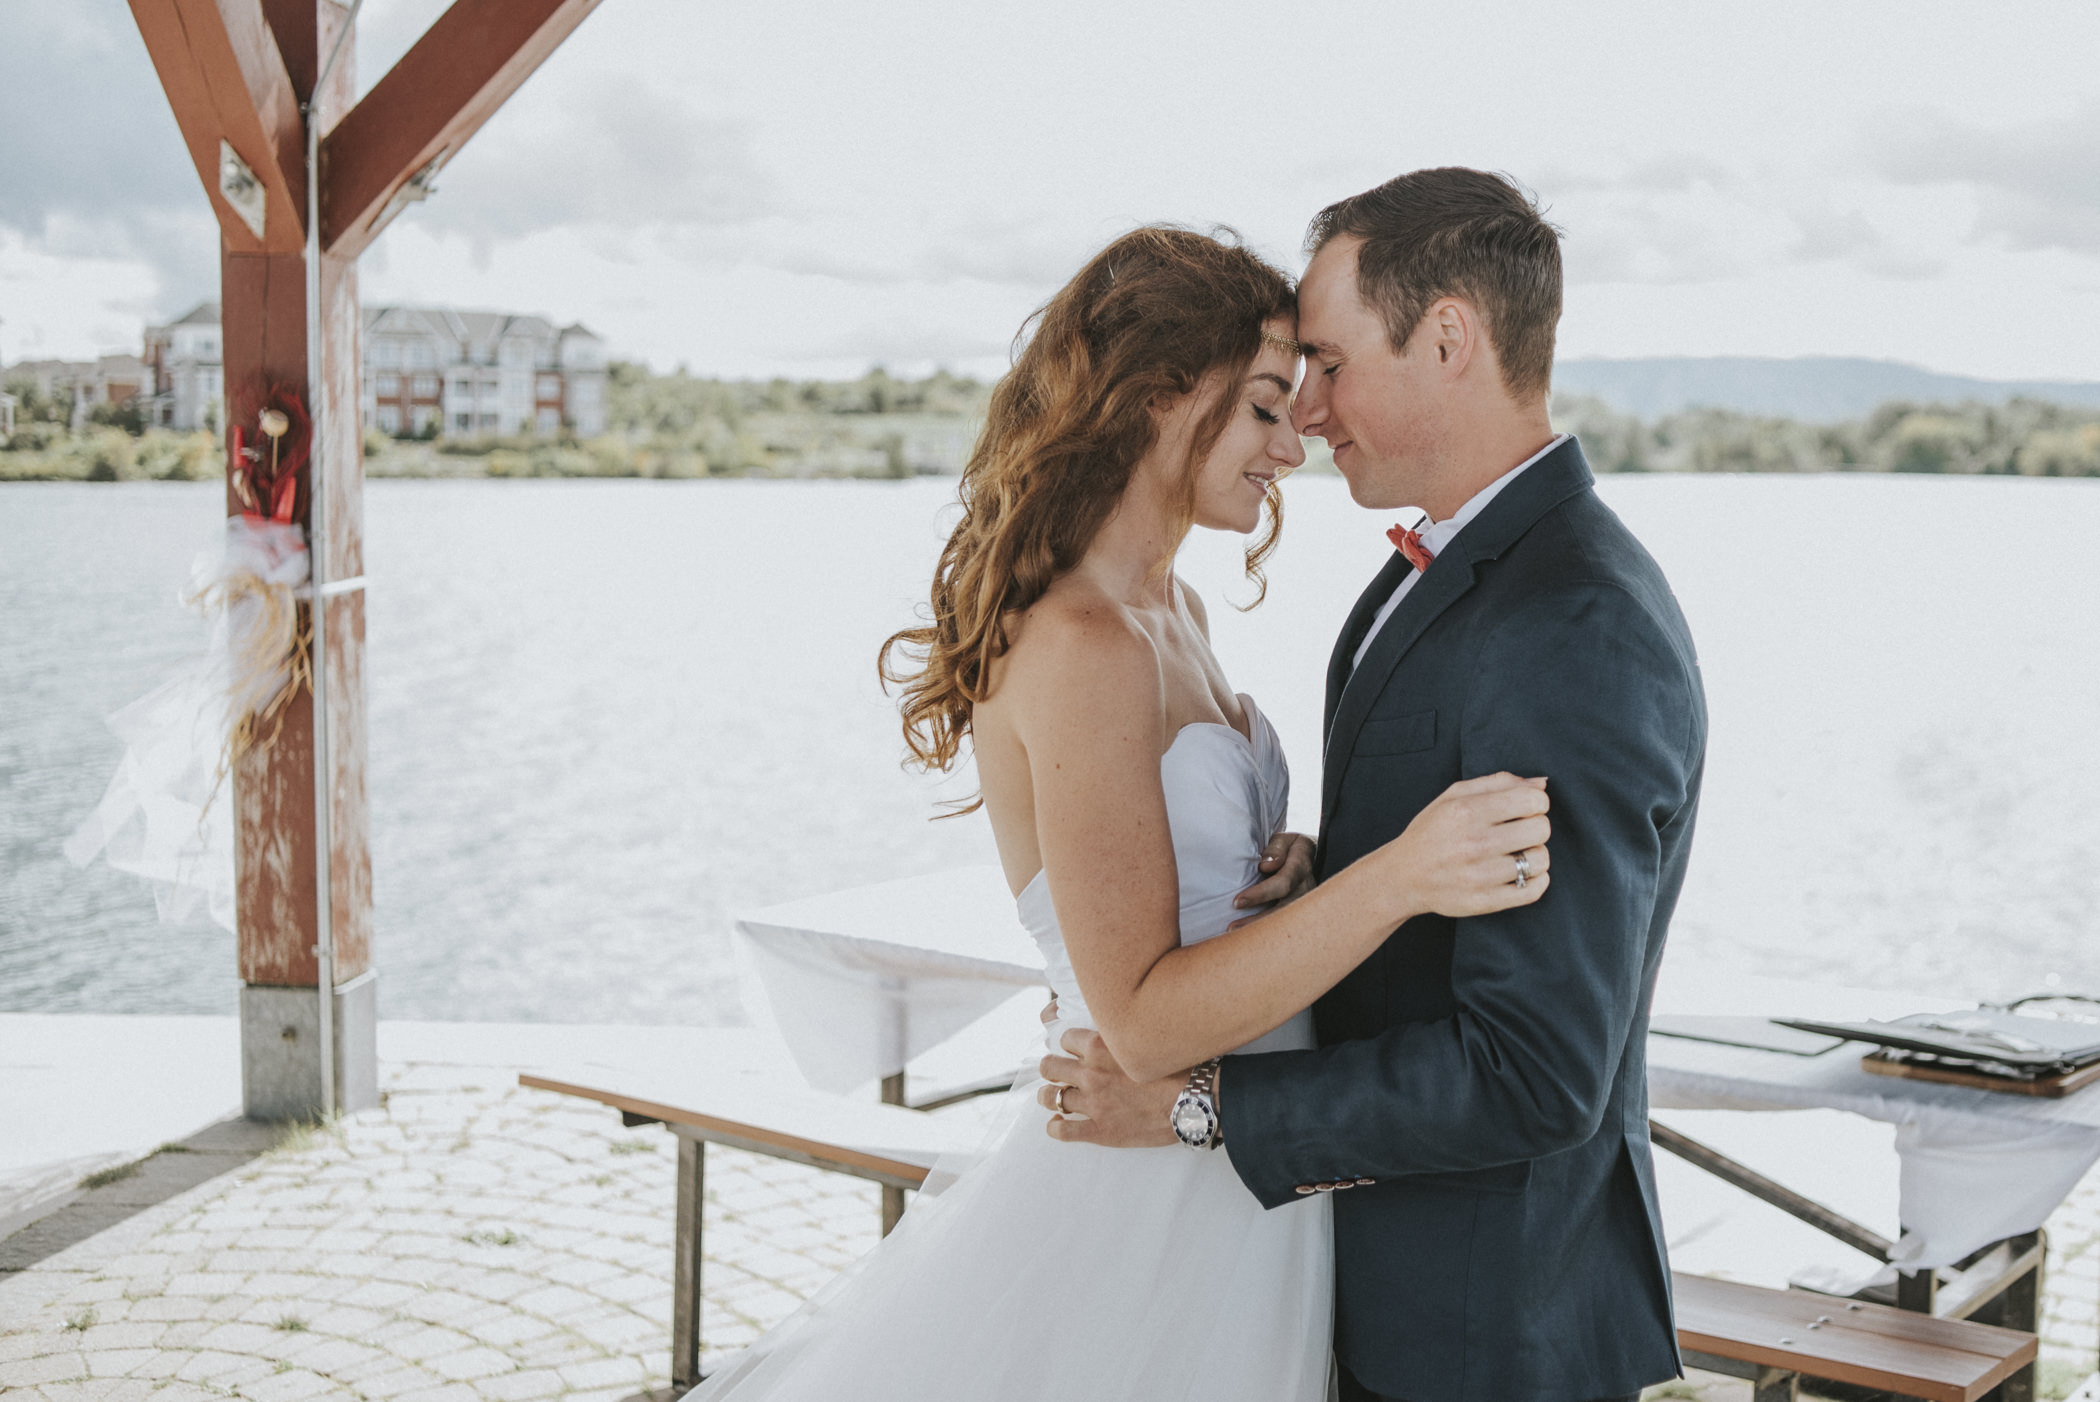 Bride and groom embracing after first kiss on pier.